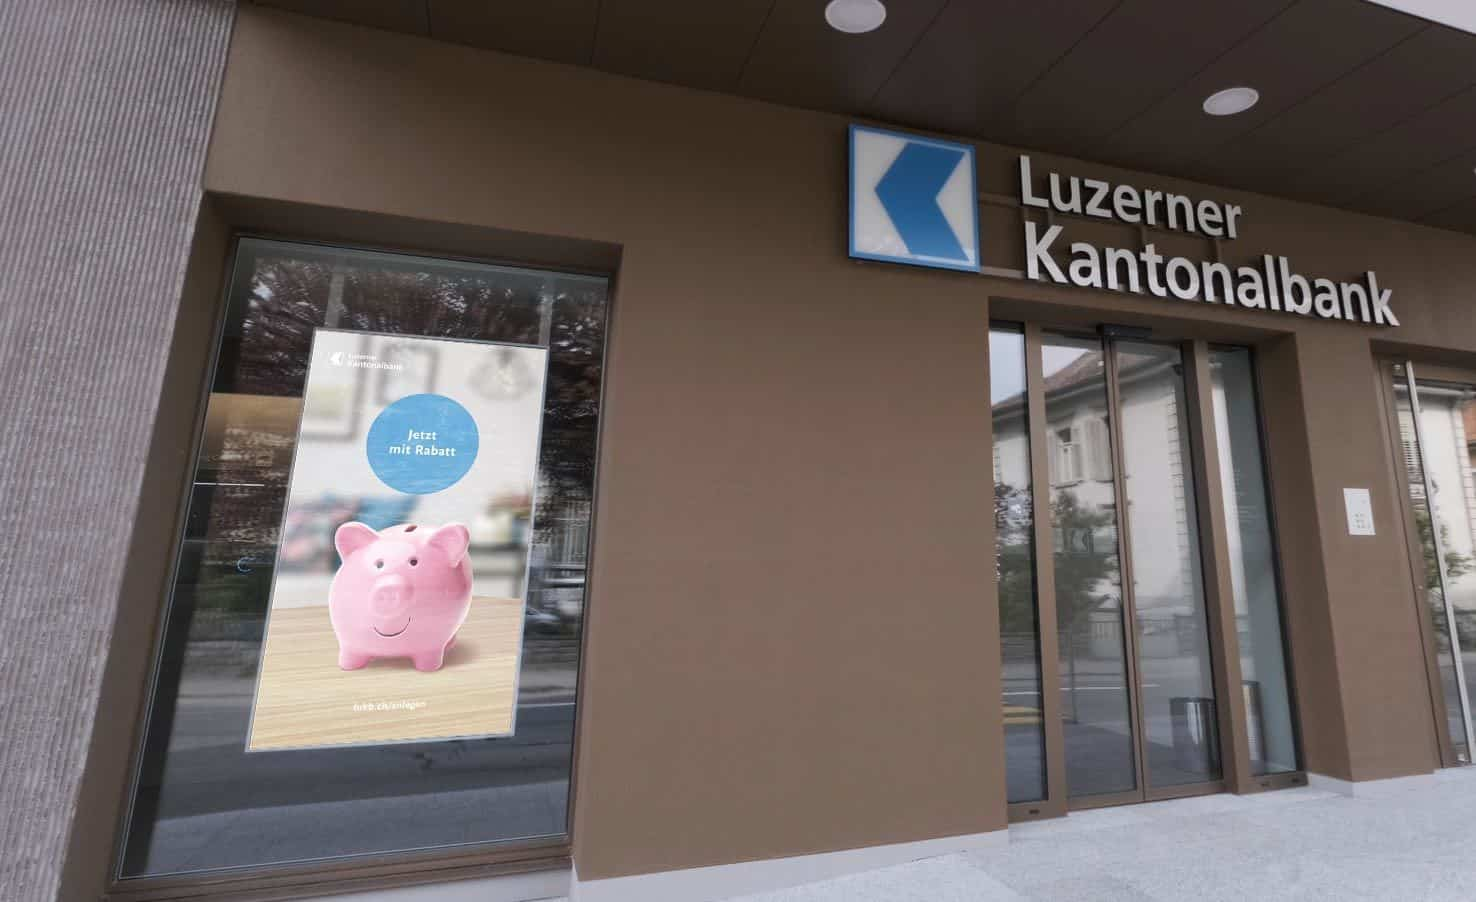 Luzerner Kantonalbank outside with point of sale display of piggy bank animation